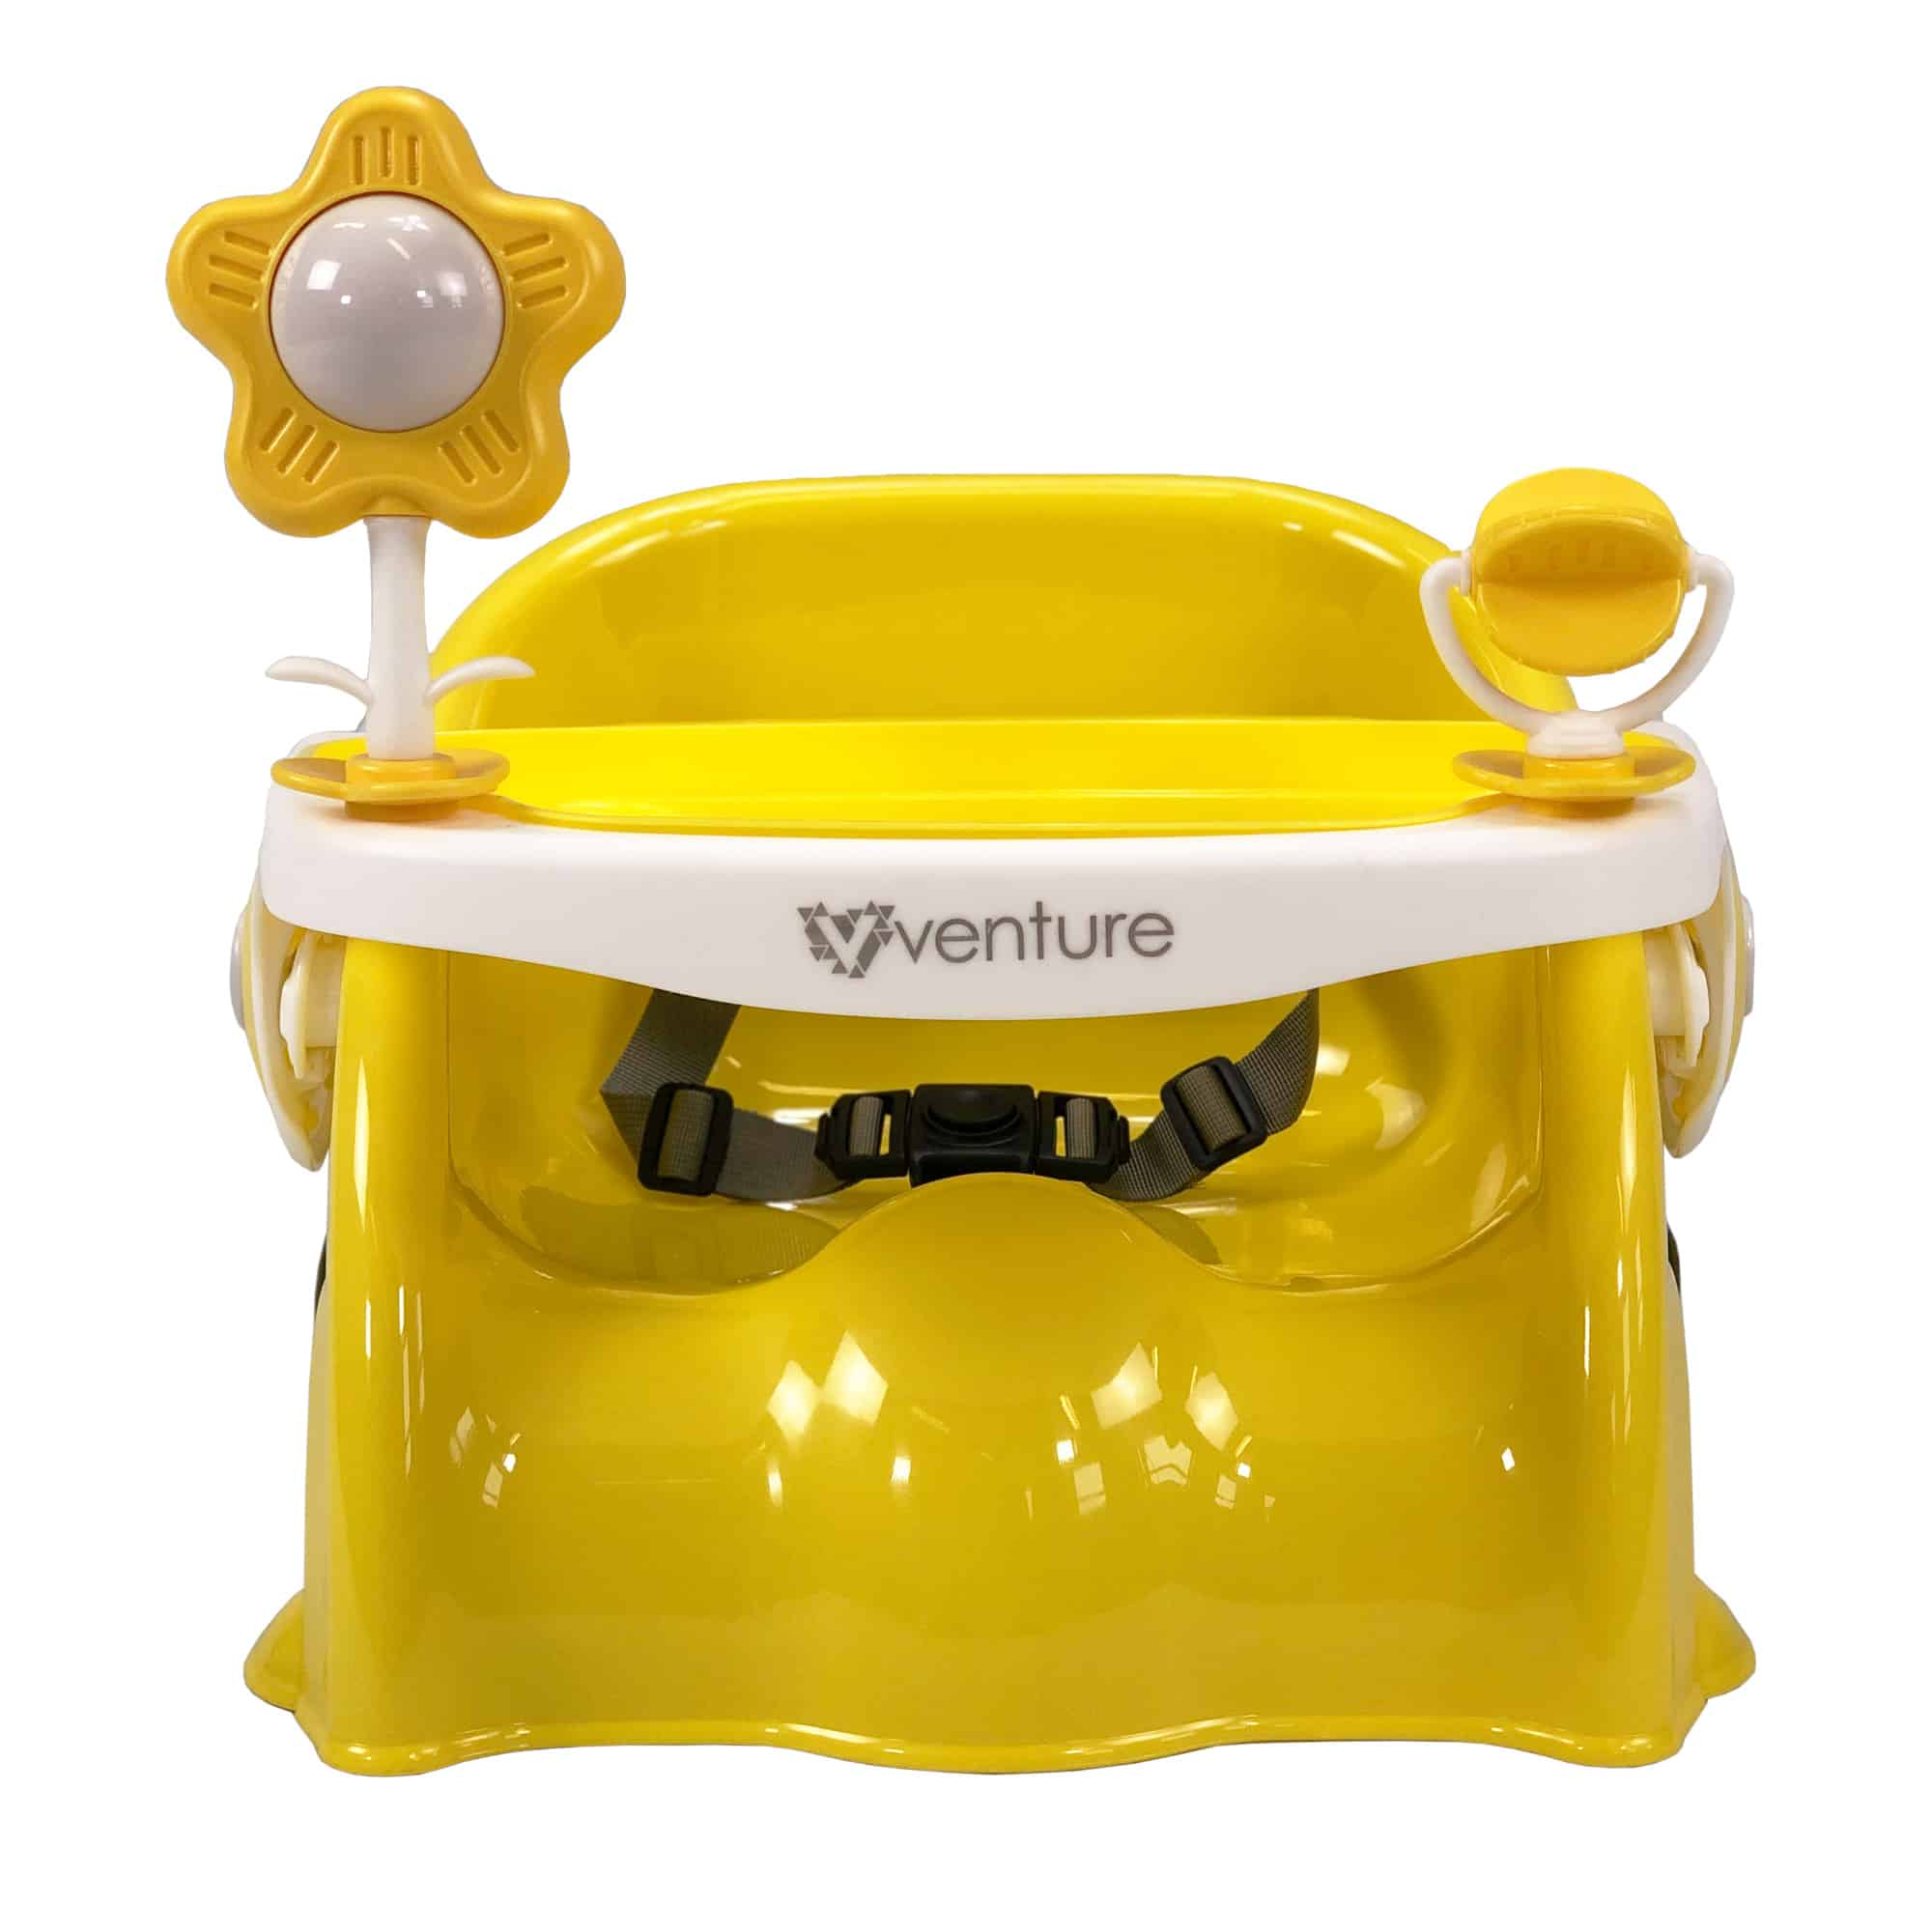 The Venture Bubble booster seat in sunny yellow